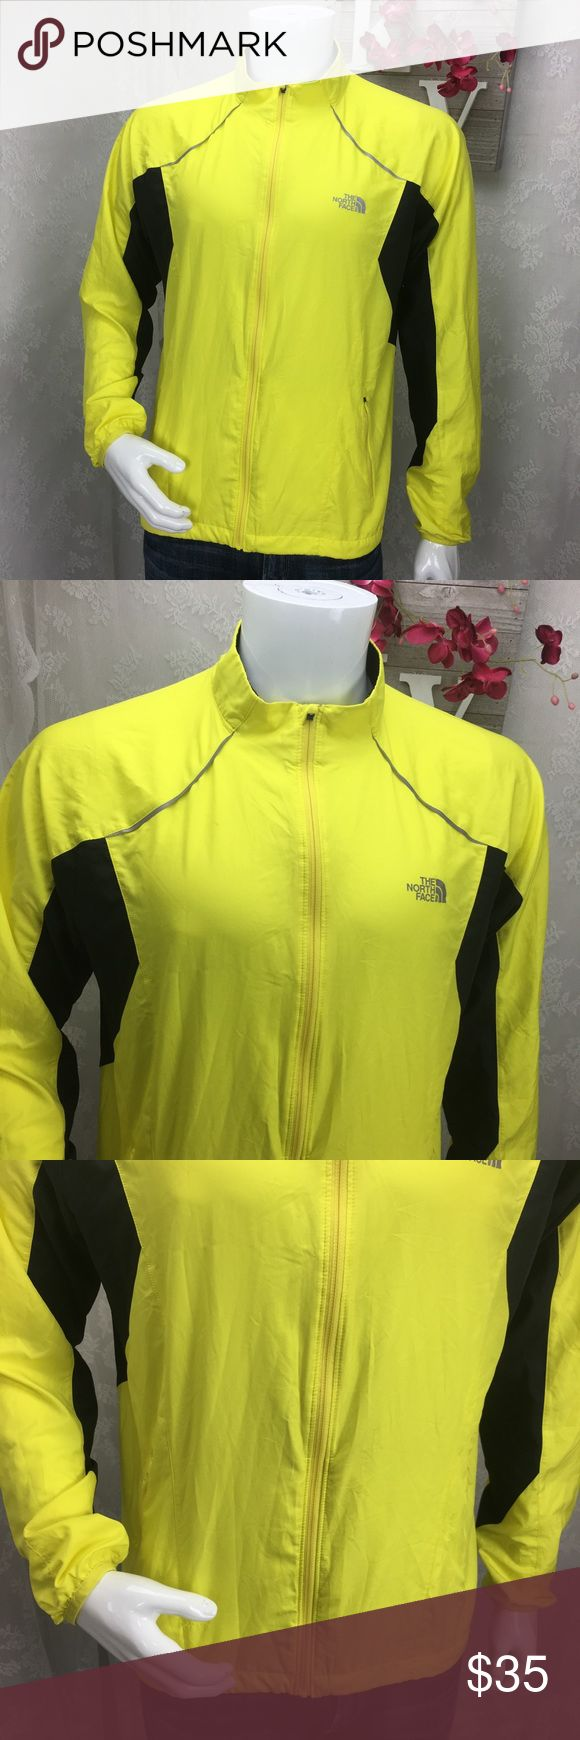 The North Face Mens windbreaker jacket The north face men's ultralight jacket bright yellow breathable long sleeve with pockets in the back one small snag see photo  Laid Flat Chest 23 Length 26 The North Face Jackets & Coats Windbreakers